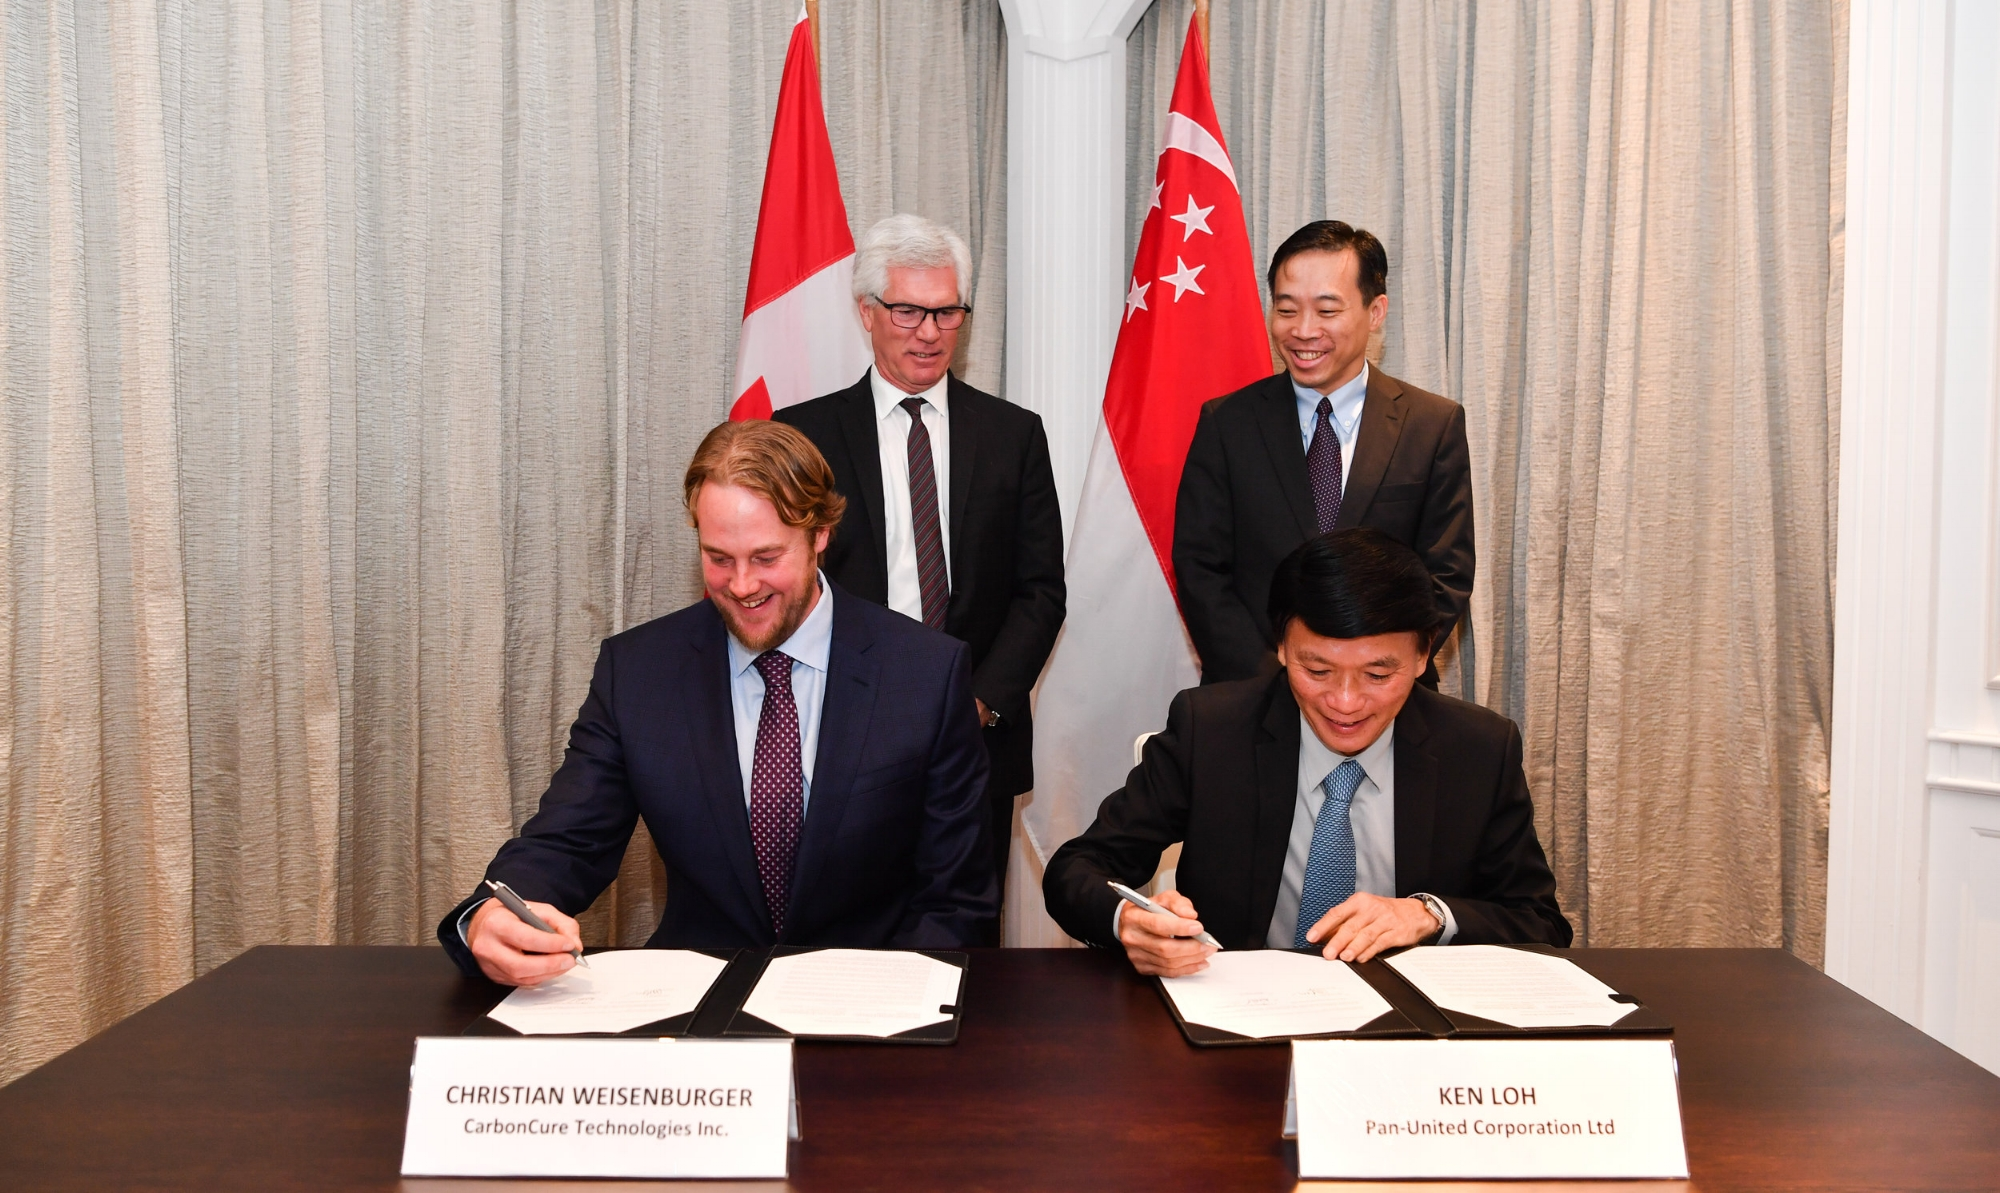 The Strategic Partnership Agreement signing ceremony took place on November 15, 2018 in Singapore between Pan-United and CarbonCure. It was jointly witnessed by the Honourable James Gordon Carr, Canada's Minister of International Trade Diversification, and Mr Png Cheong Boon, Chief Executive Officer of Enterprise Singapore, the Singapore government agency championing enterprise development.      CarbonCure Founder and Chief Executive Officer, Mr Robert Niven, was represented by Mr Christian Weisenburger, CarbonCure General Counsel. The Pan-United signatory was its Executive Director, Mr Ken Loh.